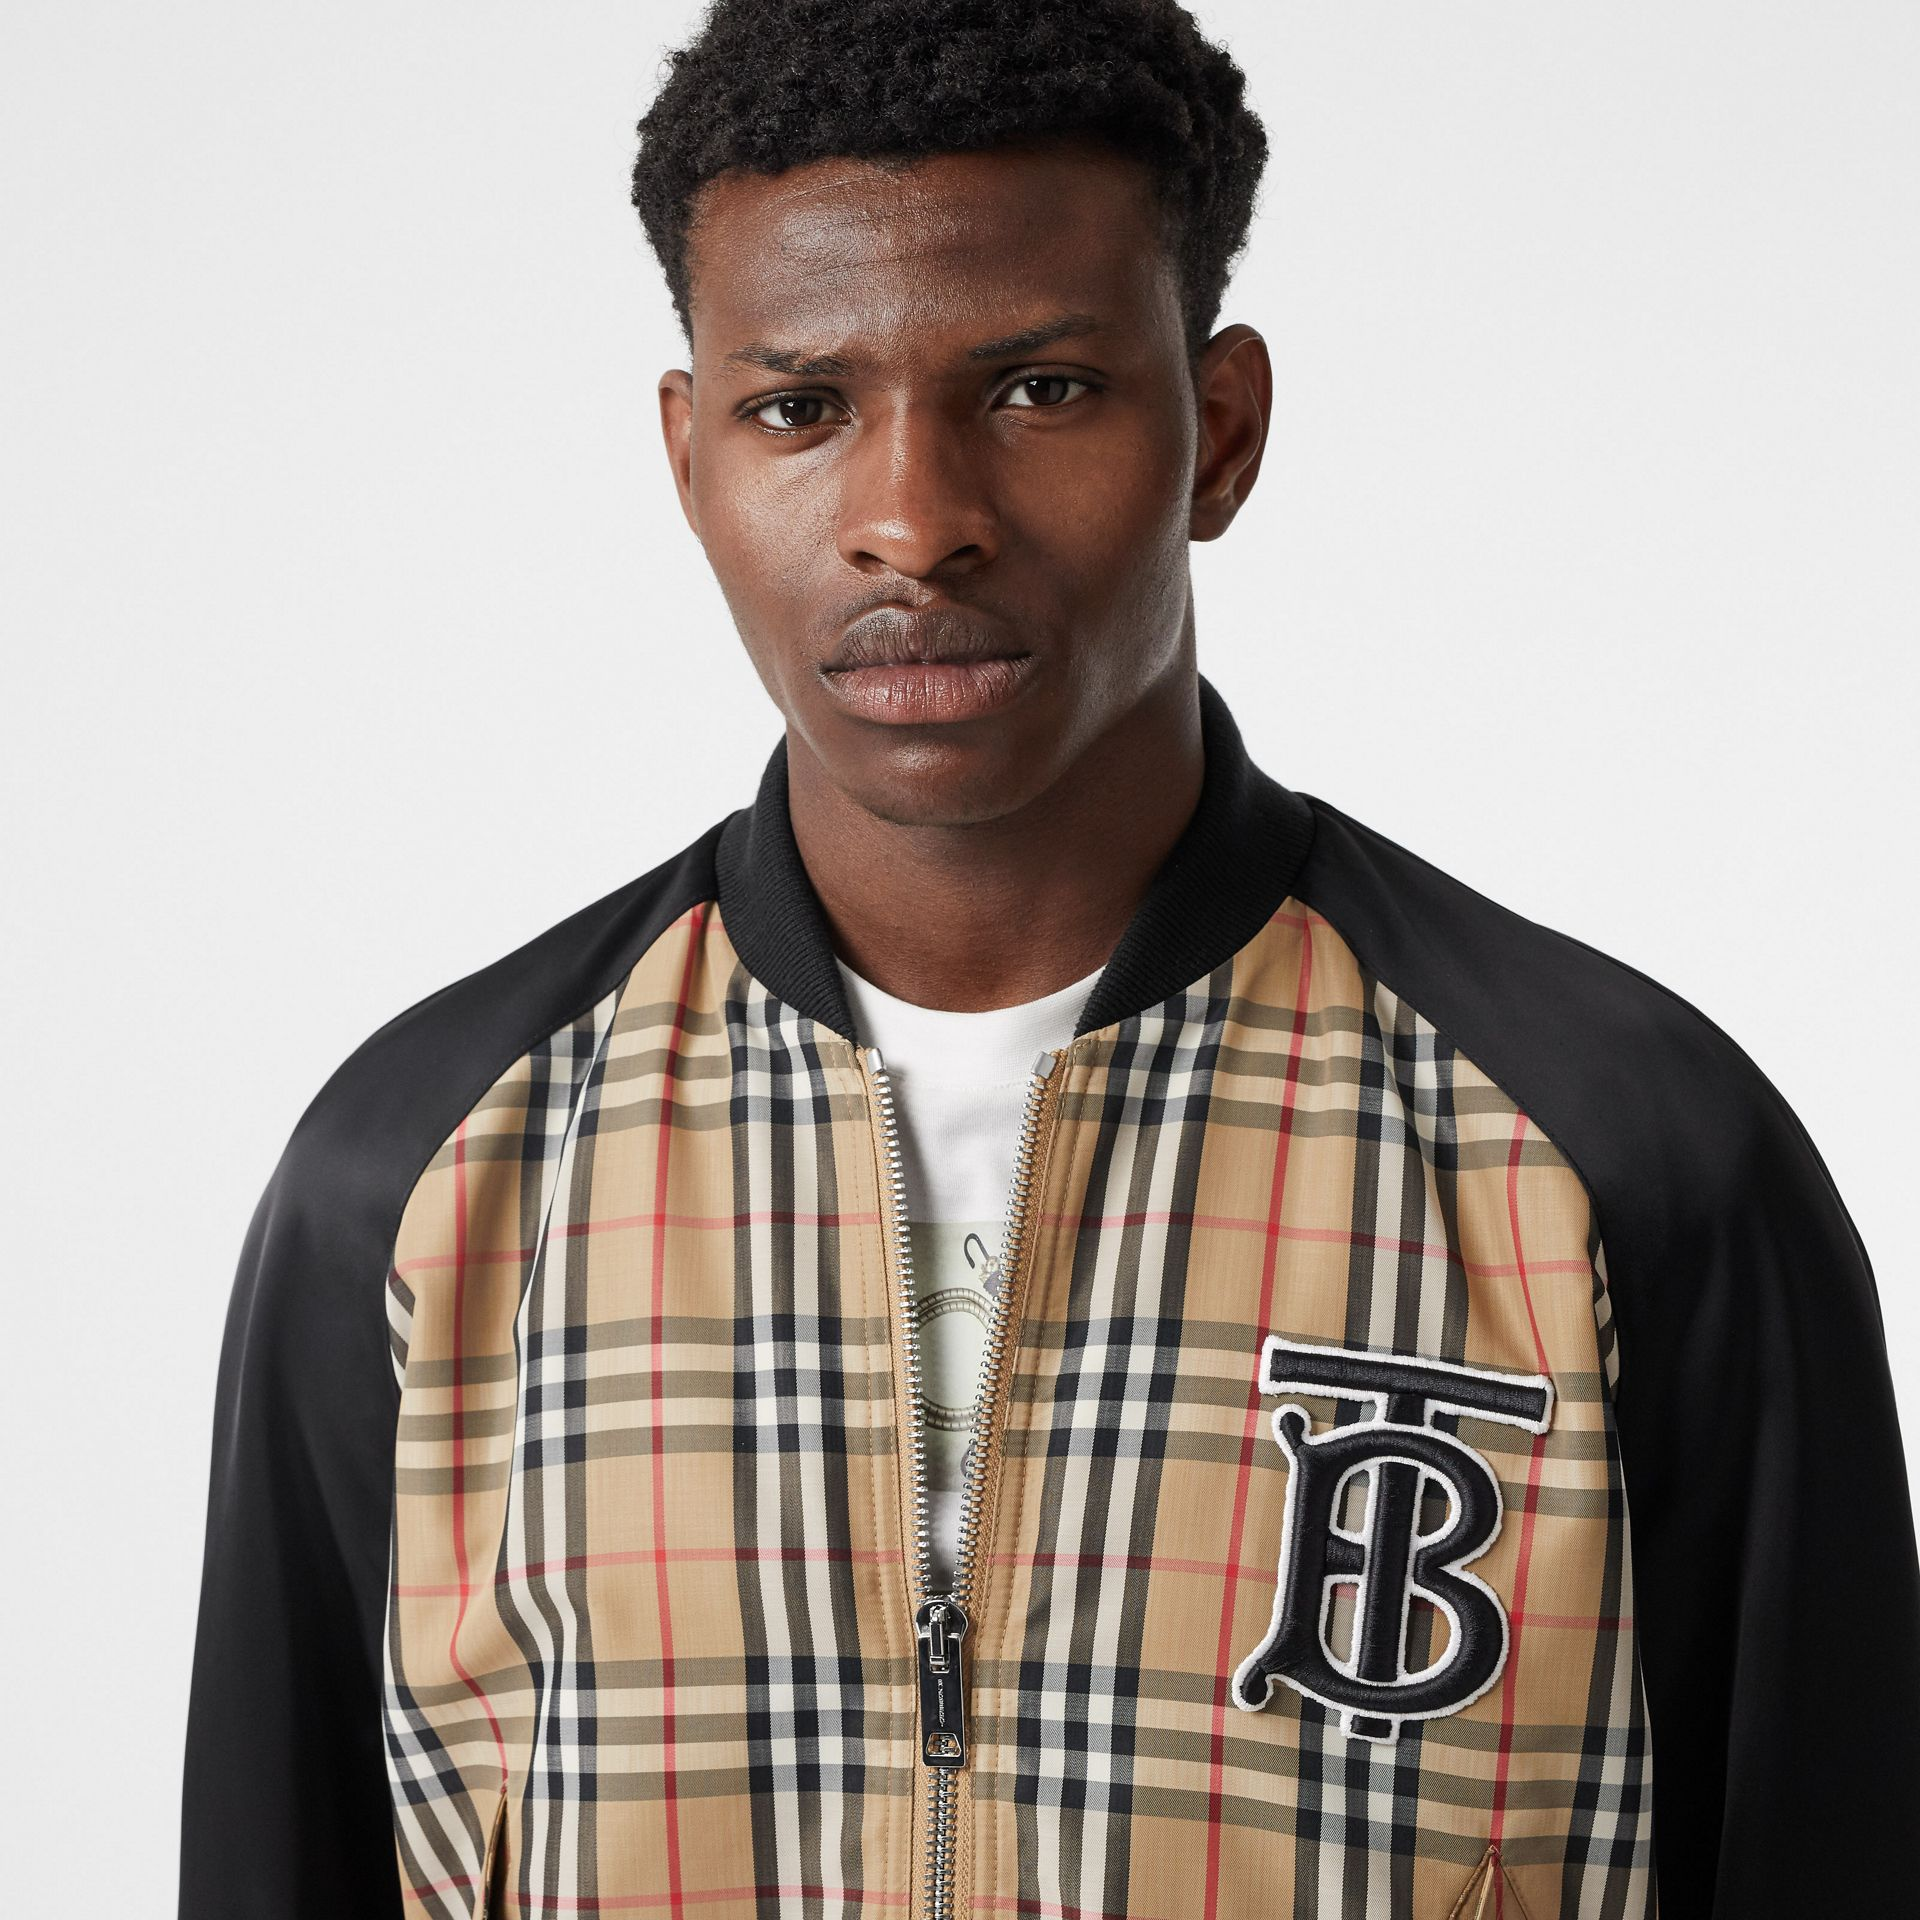 Monogram Motif Vintage Check Nylon Bomber Jacket in Archive Beige - Men | Burberry United States - gallery image 4